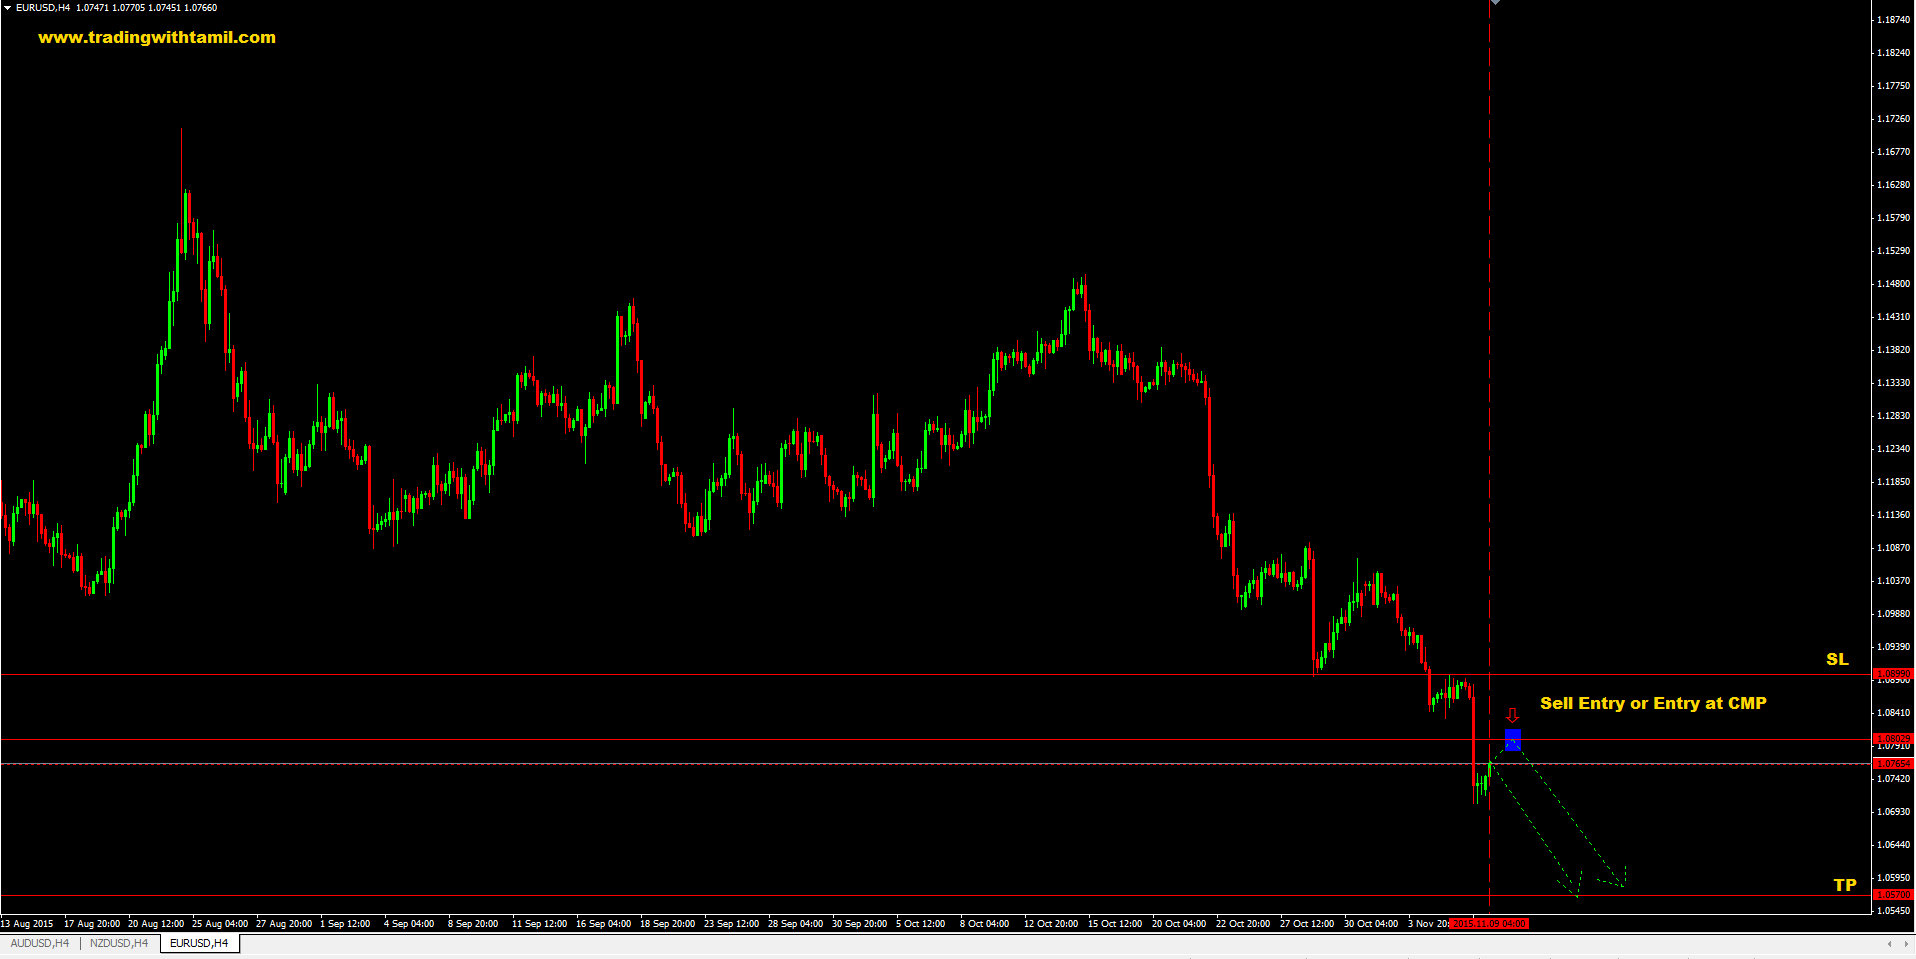 Q-FOREX LIVE CHALLENGING SIGNAL 09 Nov 2015 – SELL EUR/USD